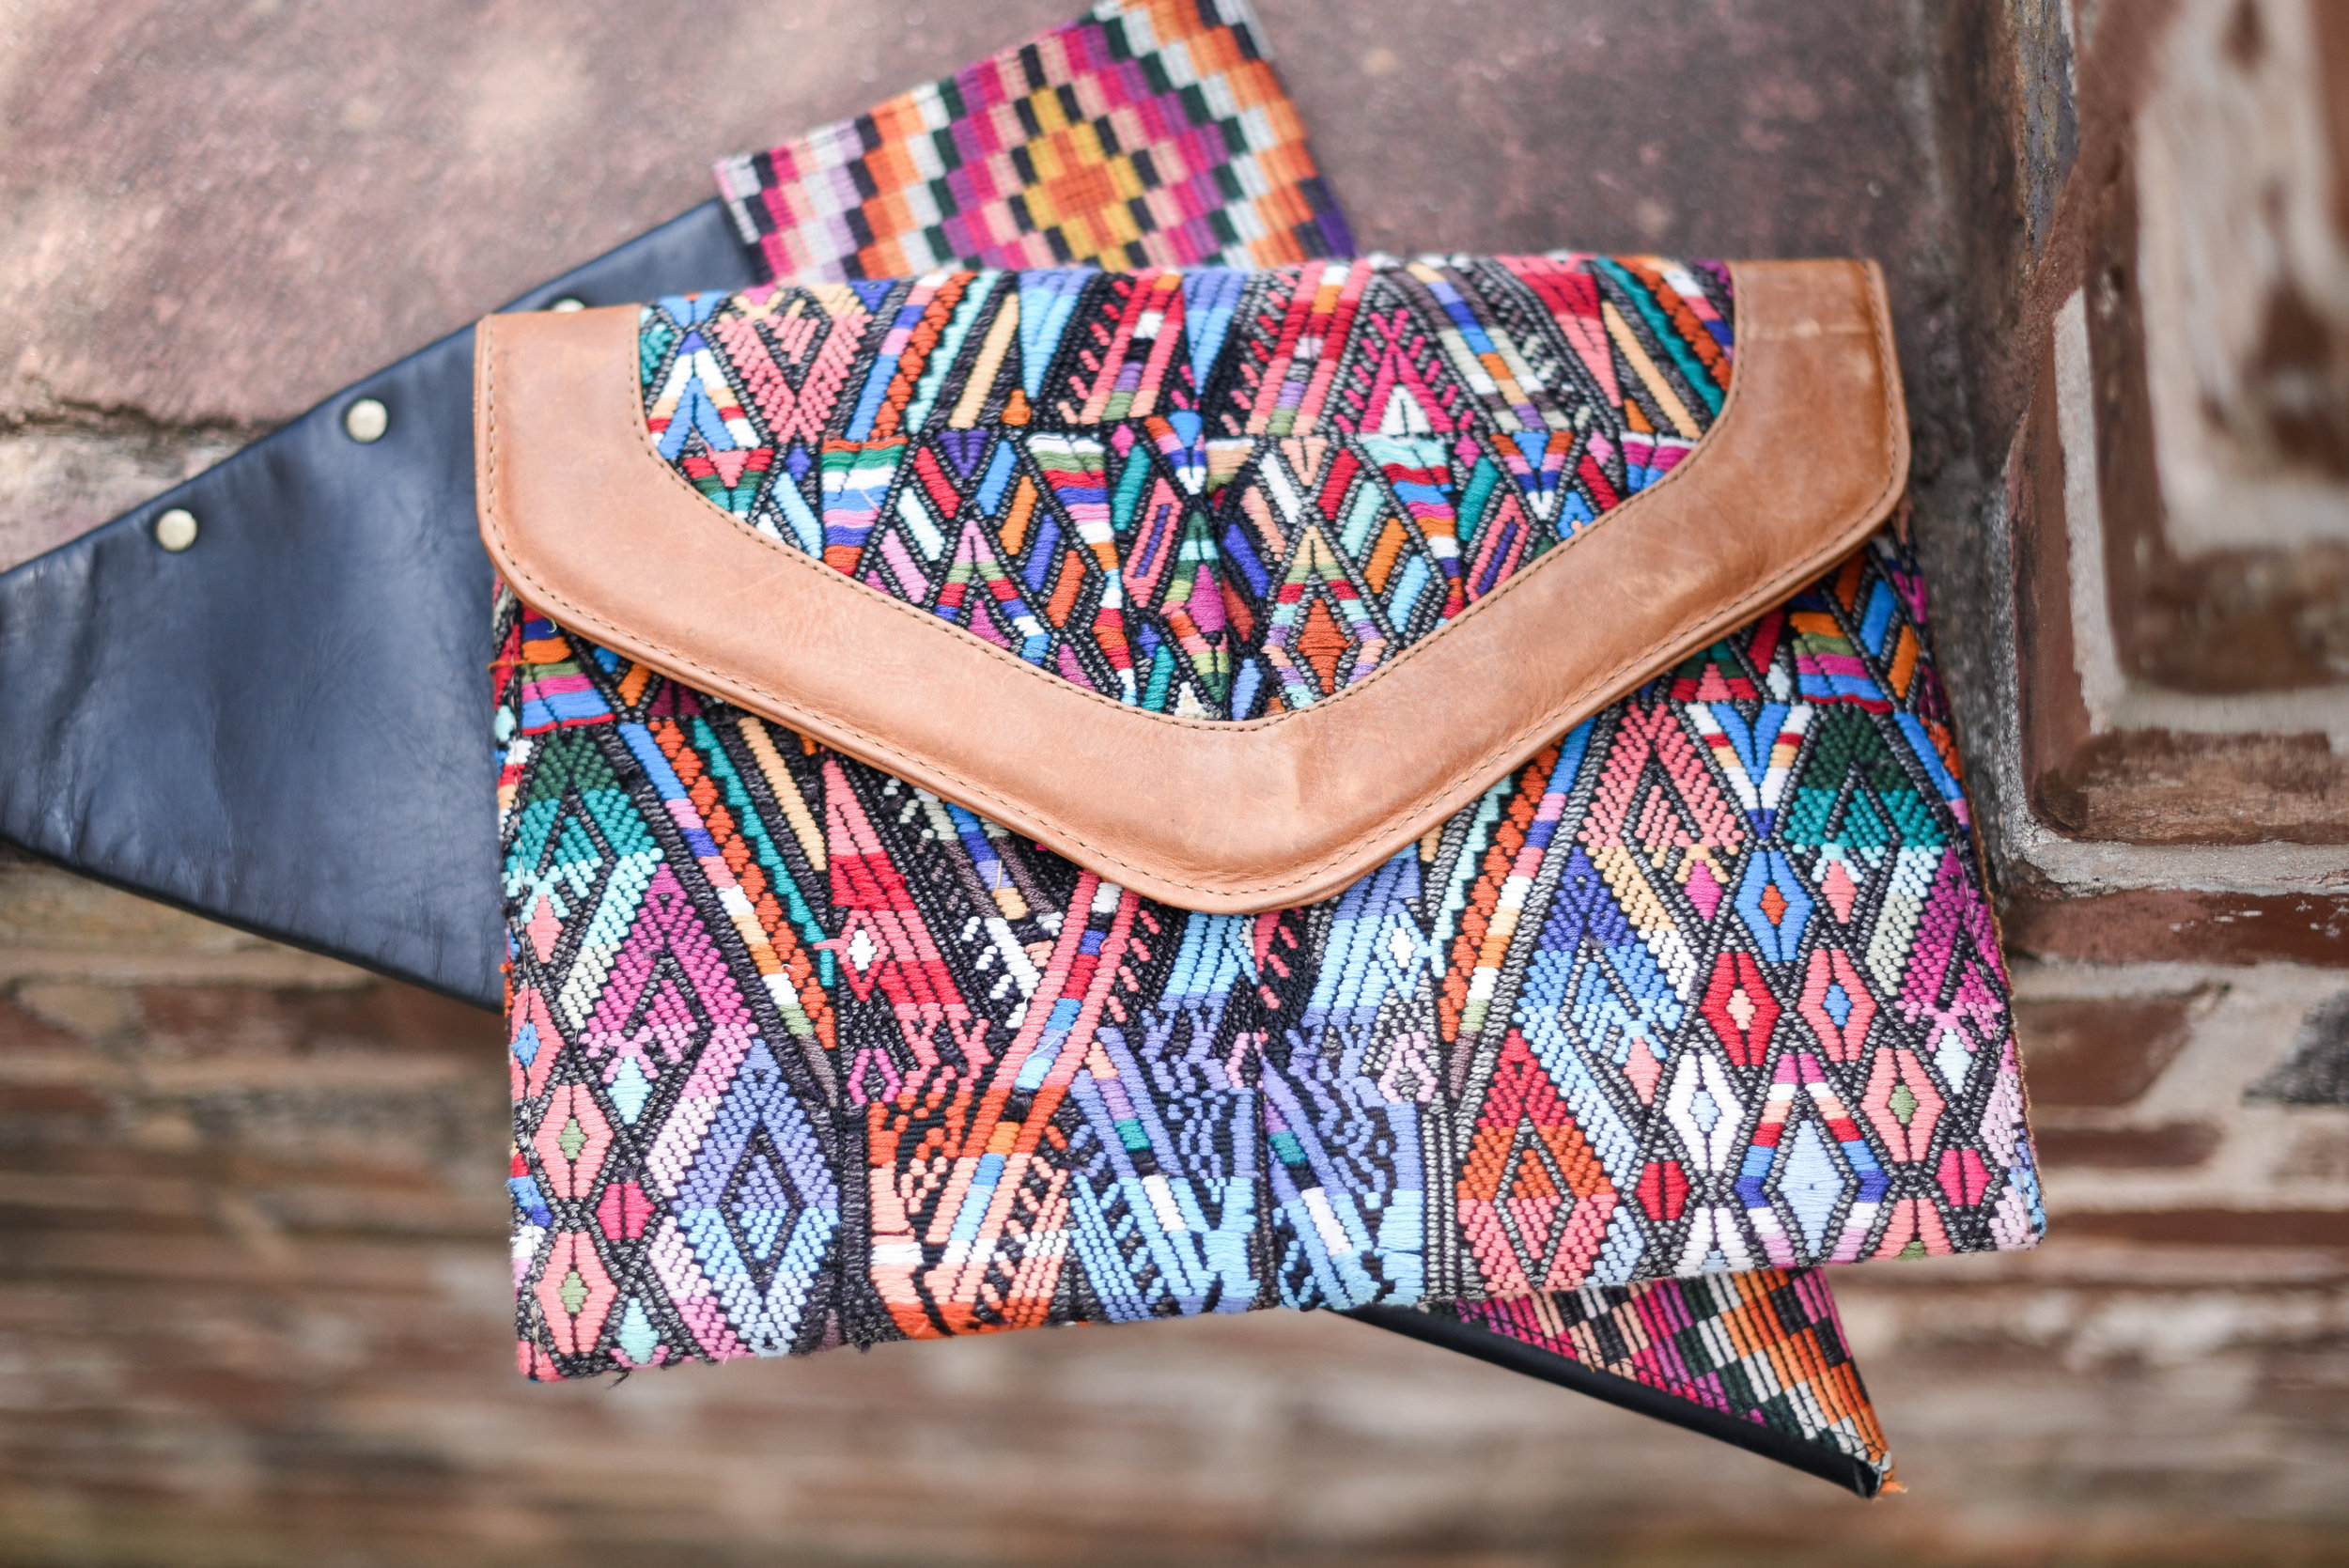 Hazlo Handmade Guatemala Fair Trade Hand Woven Leather Bags Accessories Belts Antigua Slow Fashion For Good.jpg